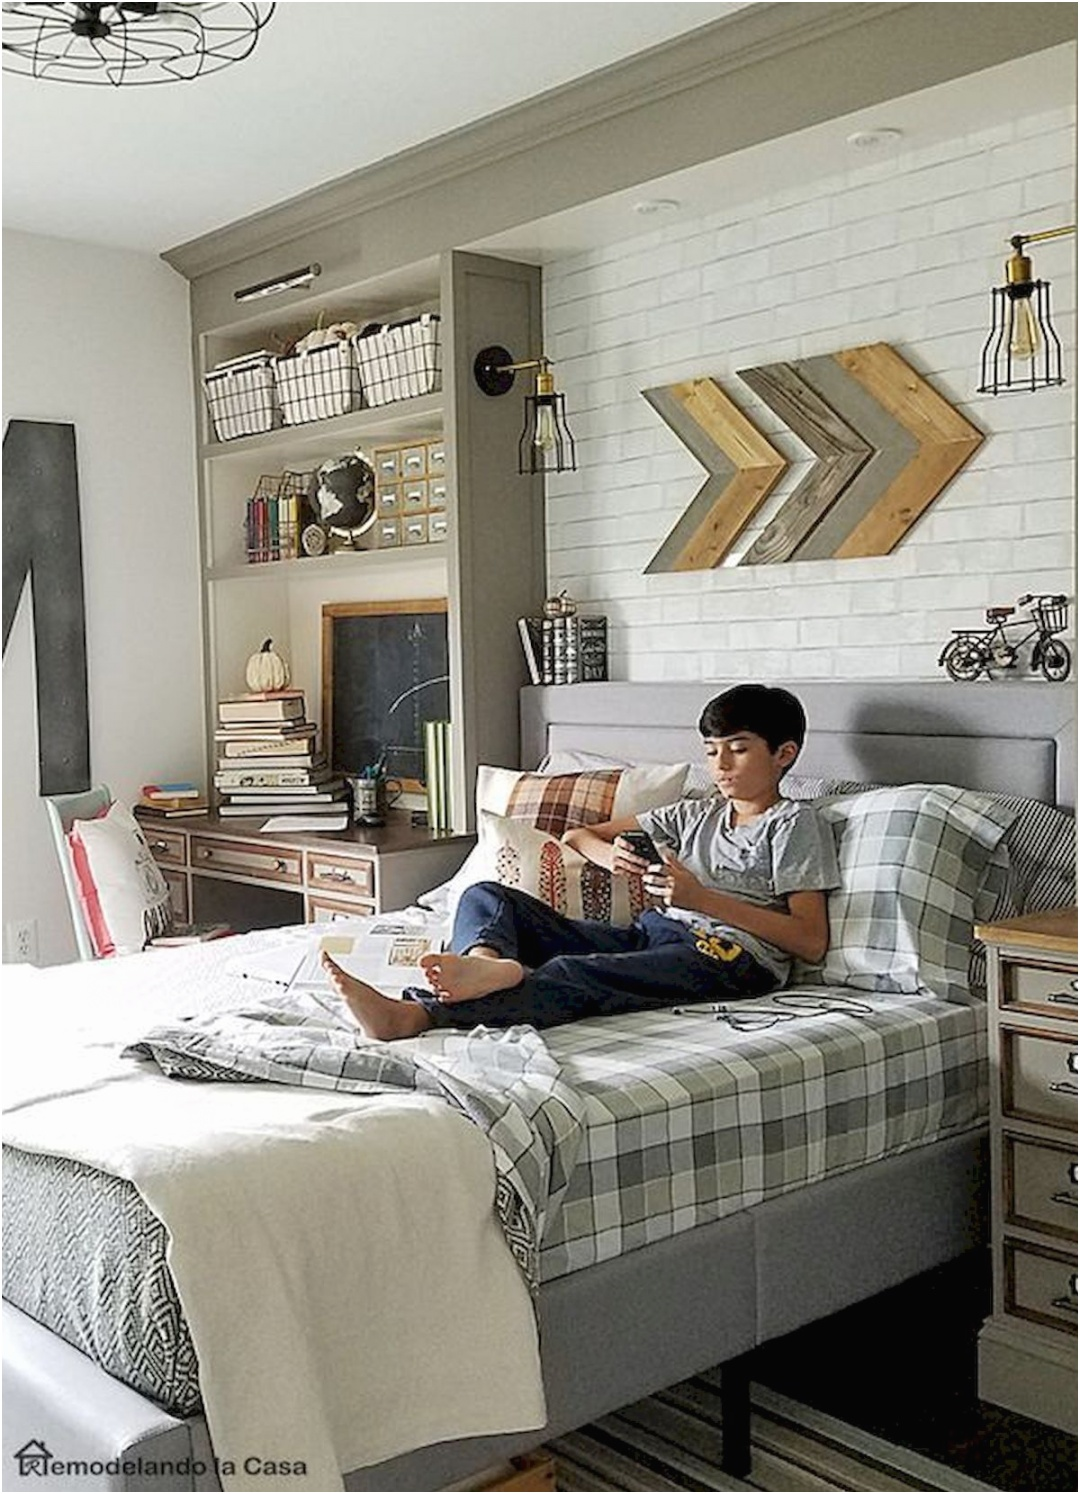 45 Cool Boys Bedroom Ideas to Try at Home 2